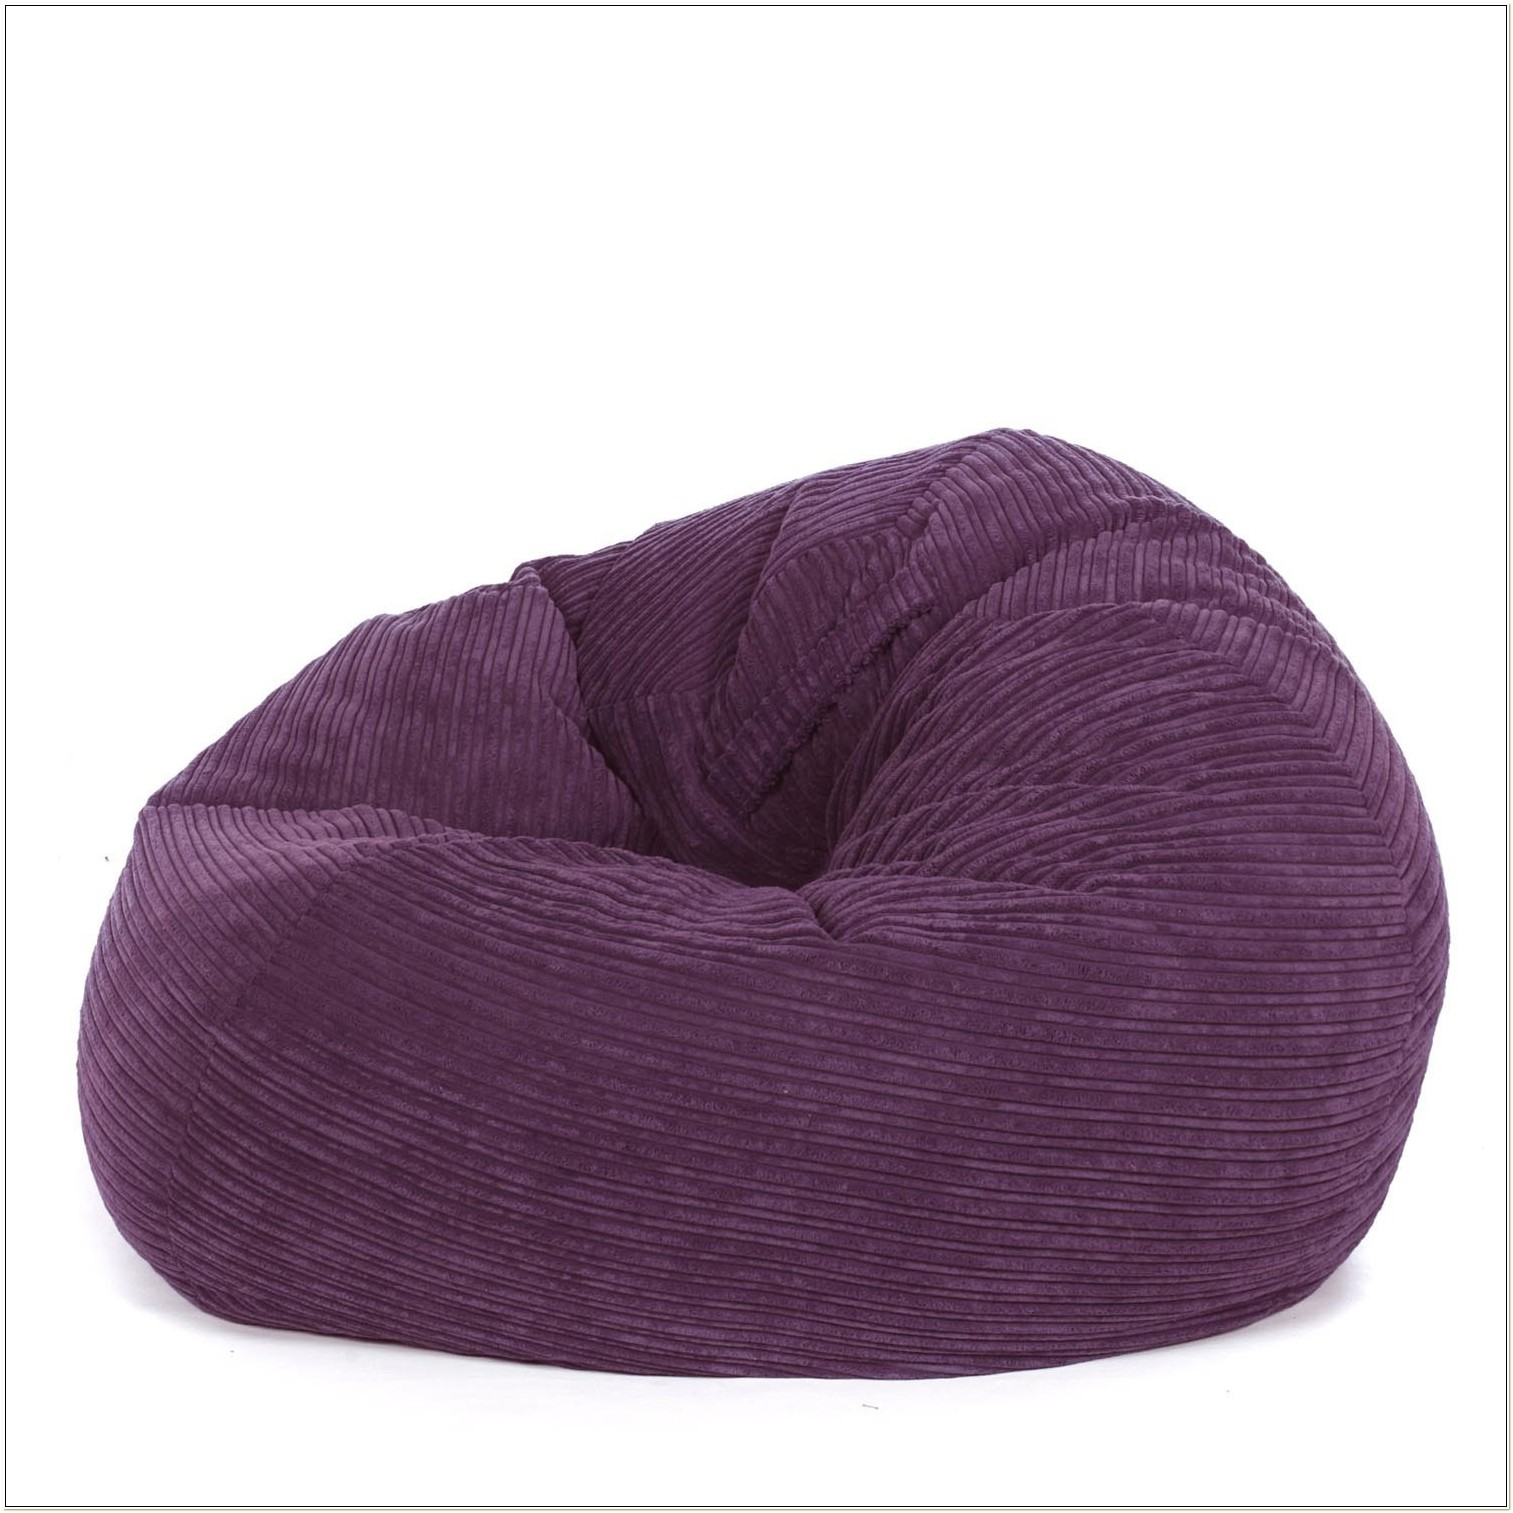 Purple Corduroy Bean Bag Chair